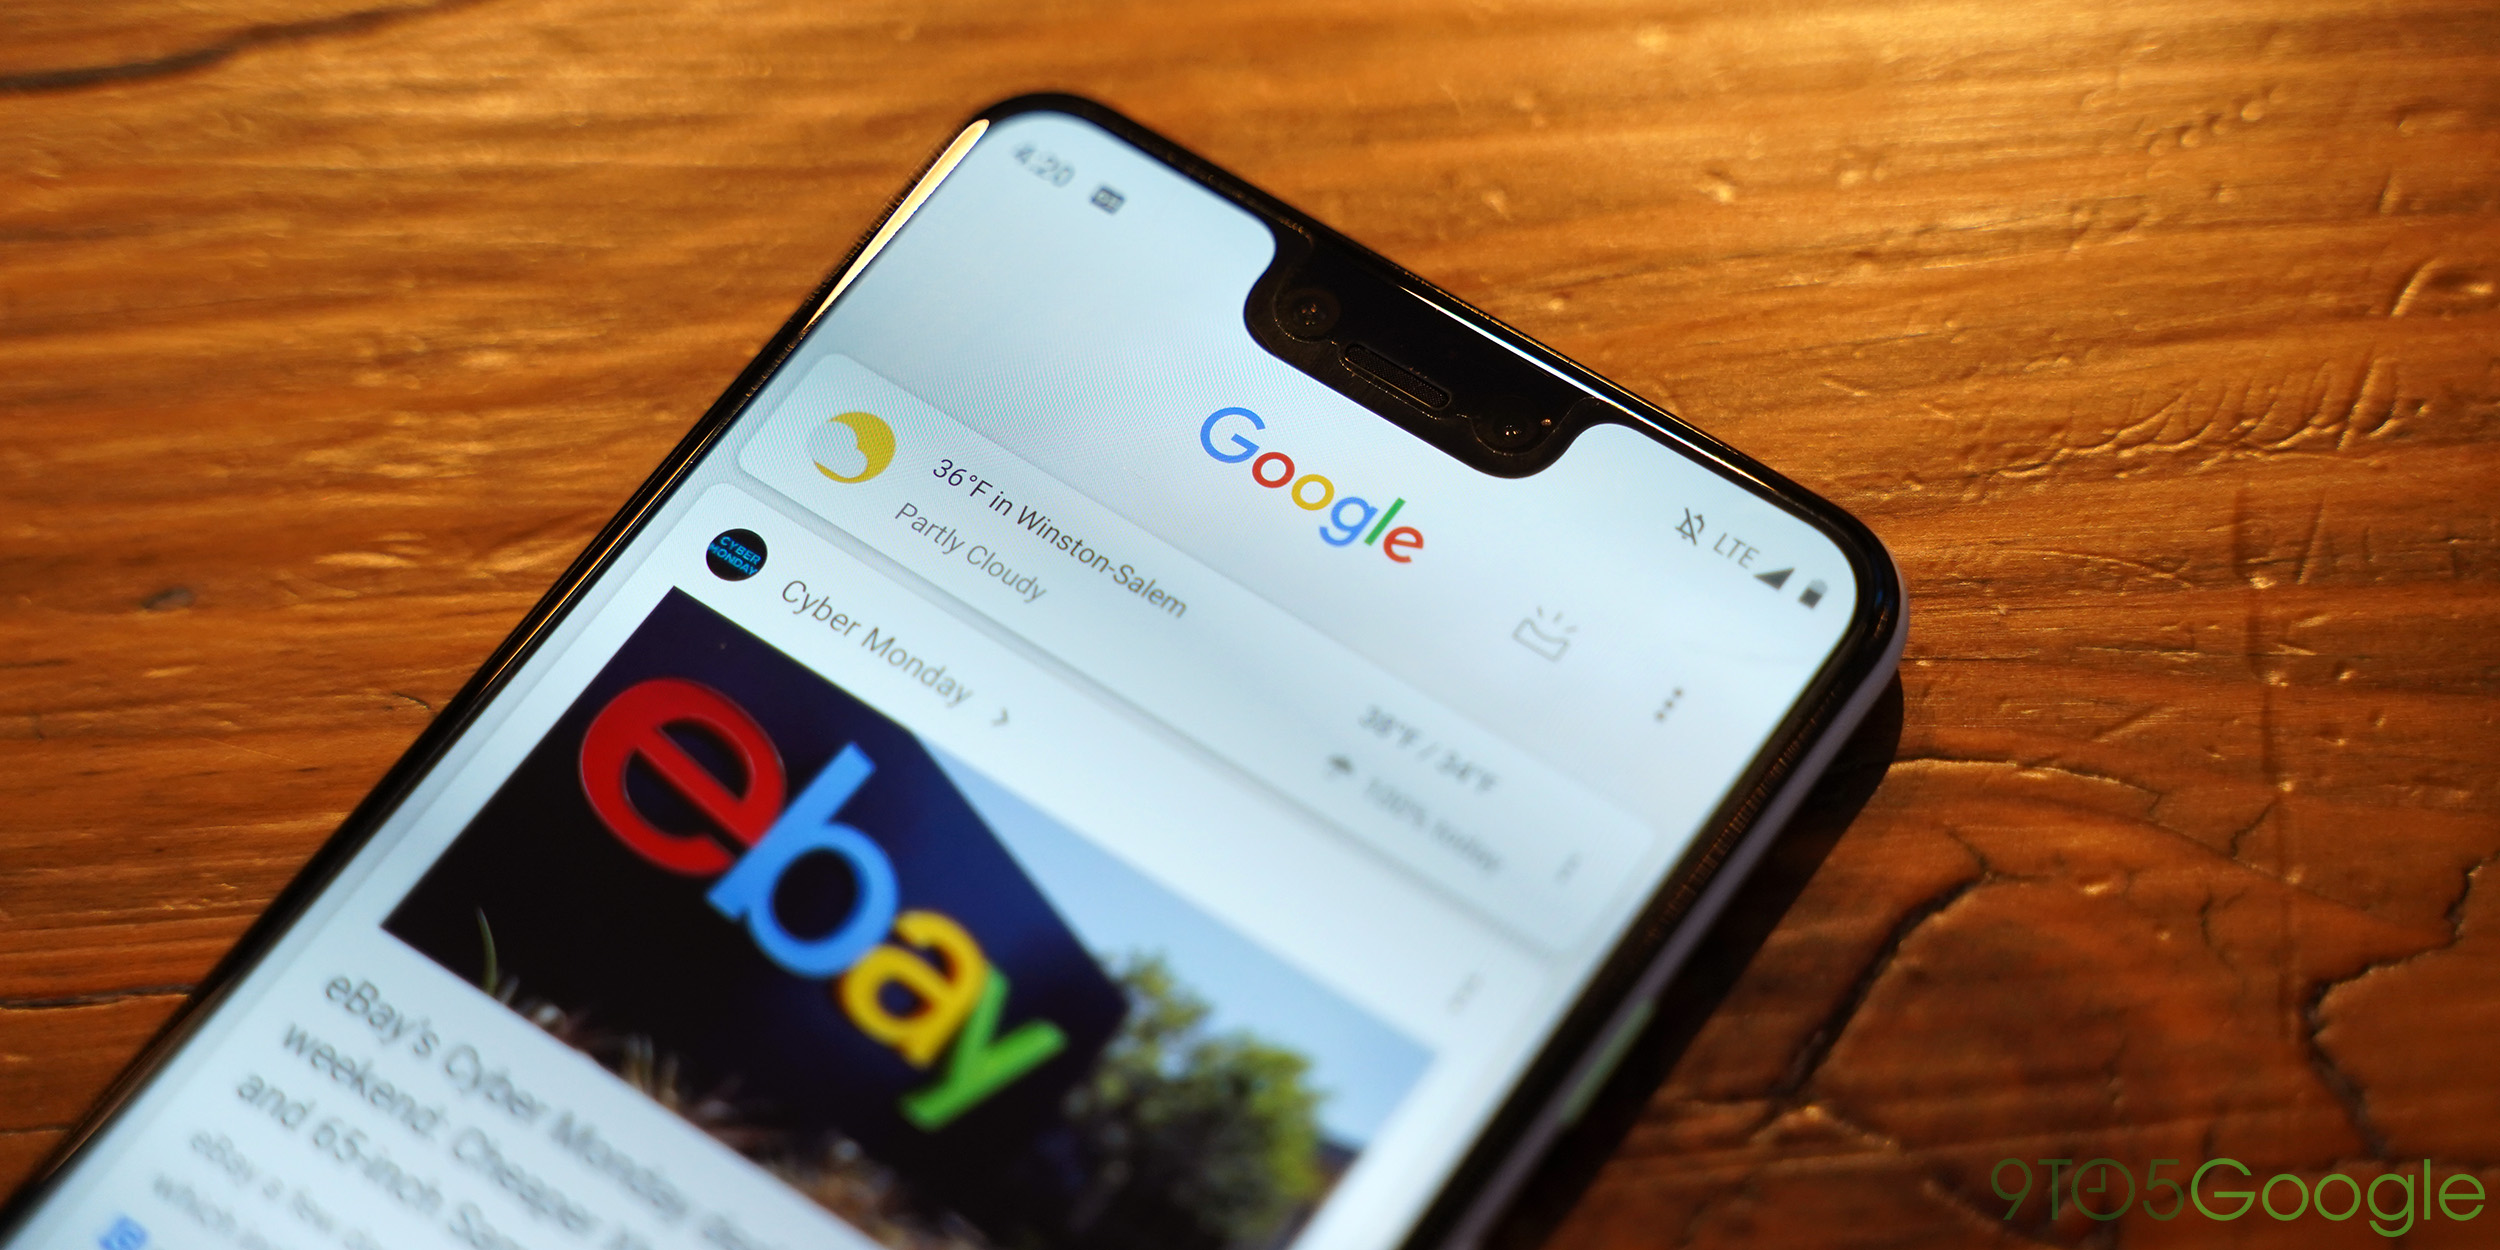 Google Search indexing appears broken, not showing new results